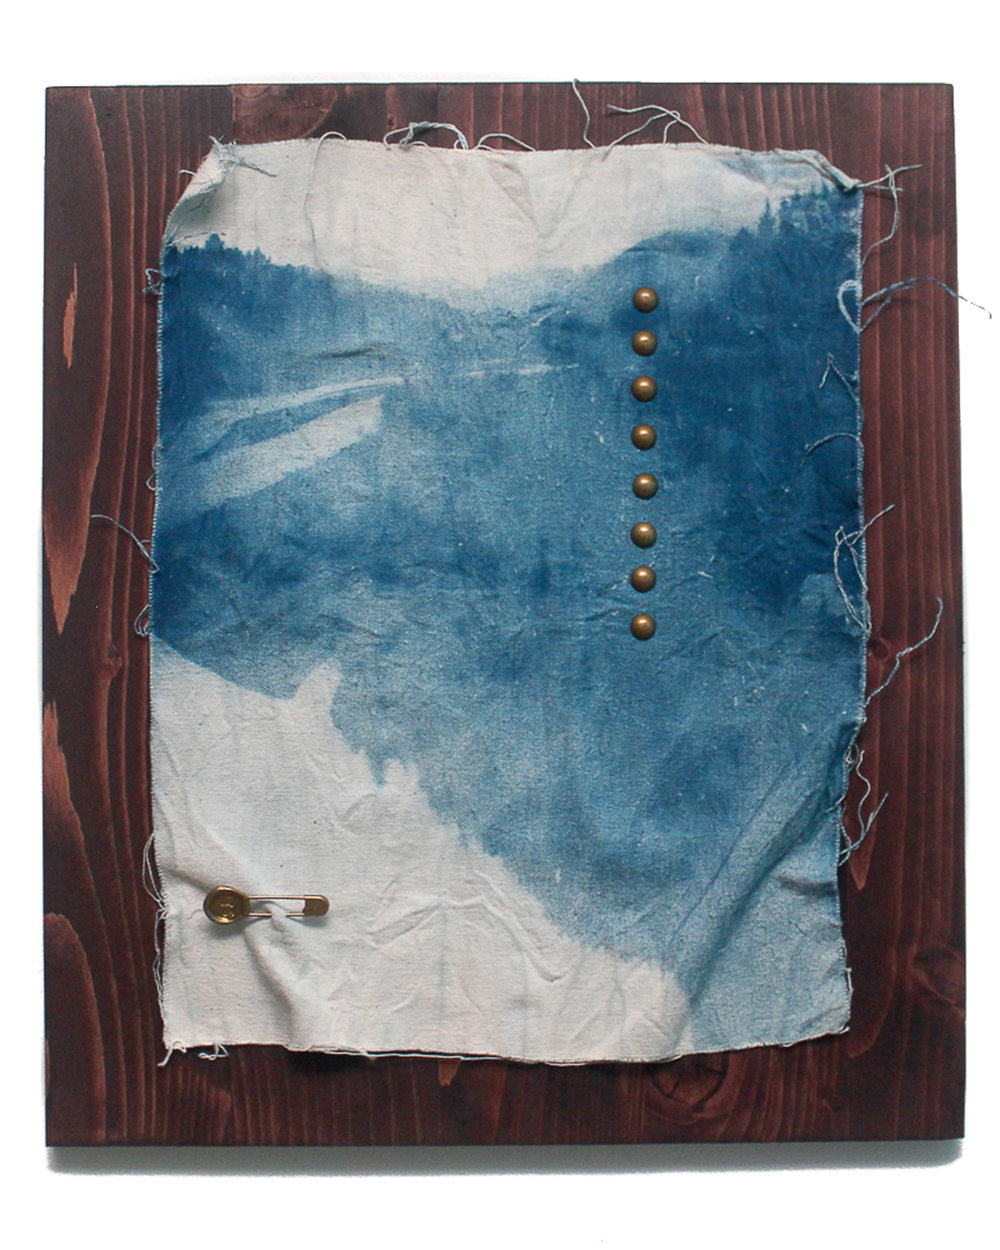 Jeremiah Morris - _Holding Together the Peaces_ - 16x20 - Cyanotype photographic print on cavas, found brass laundry pin, brass tacks, wood - 2016 - $650.jpg